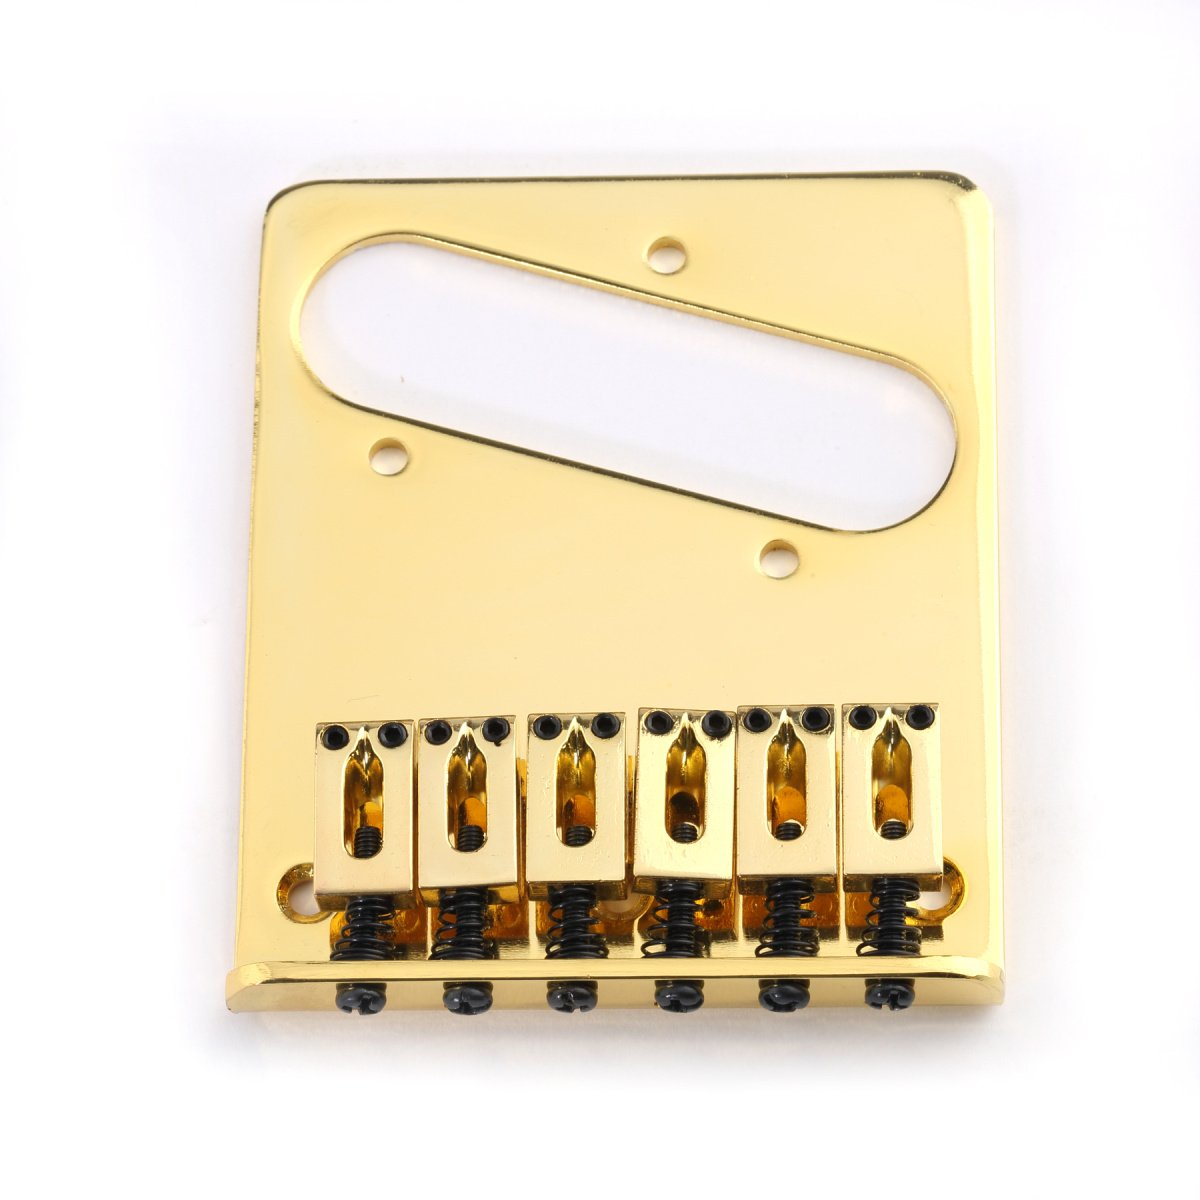 Musiclily Guitar Telecaster Bridge Assembly with 6 Saddles for Fender Tele Replacement,Gold